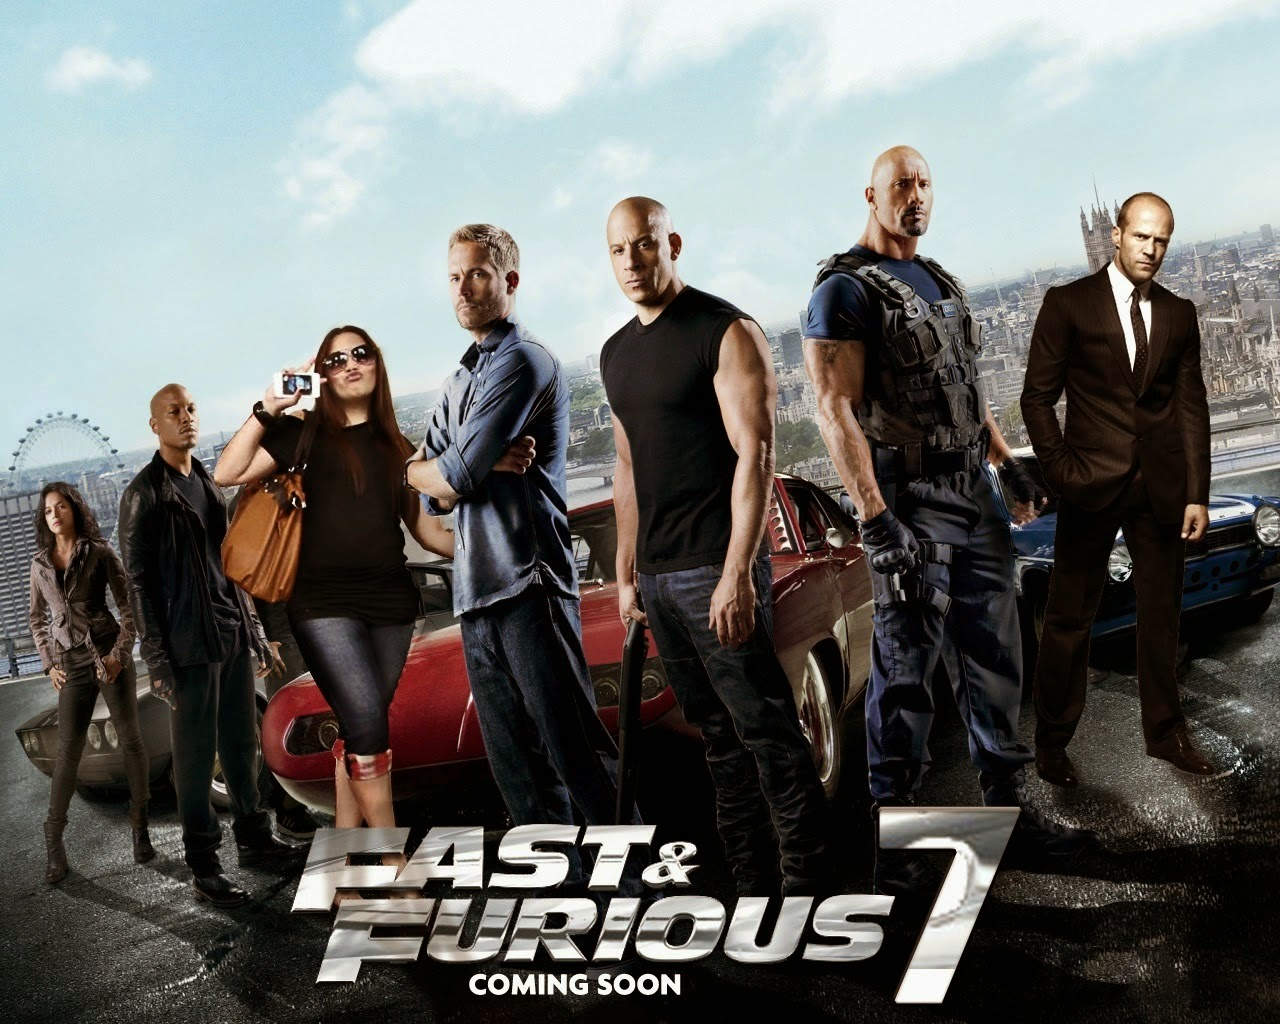 Watch} fast and furious 7 full movie online download torrent.